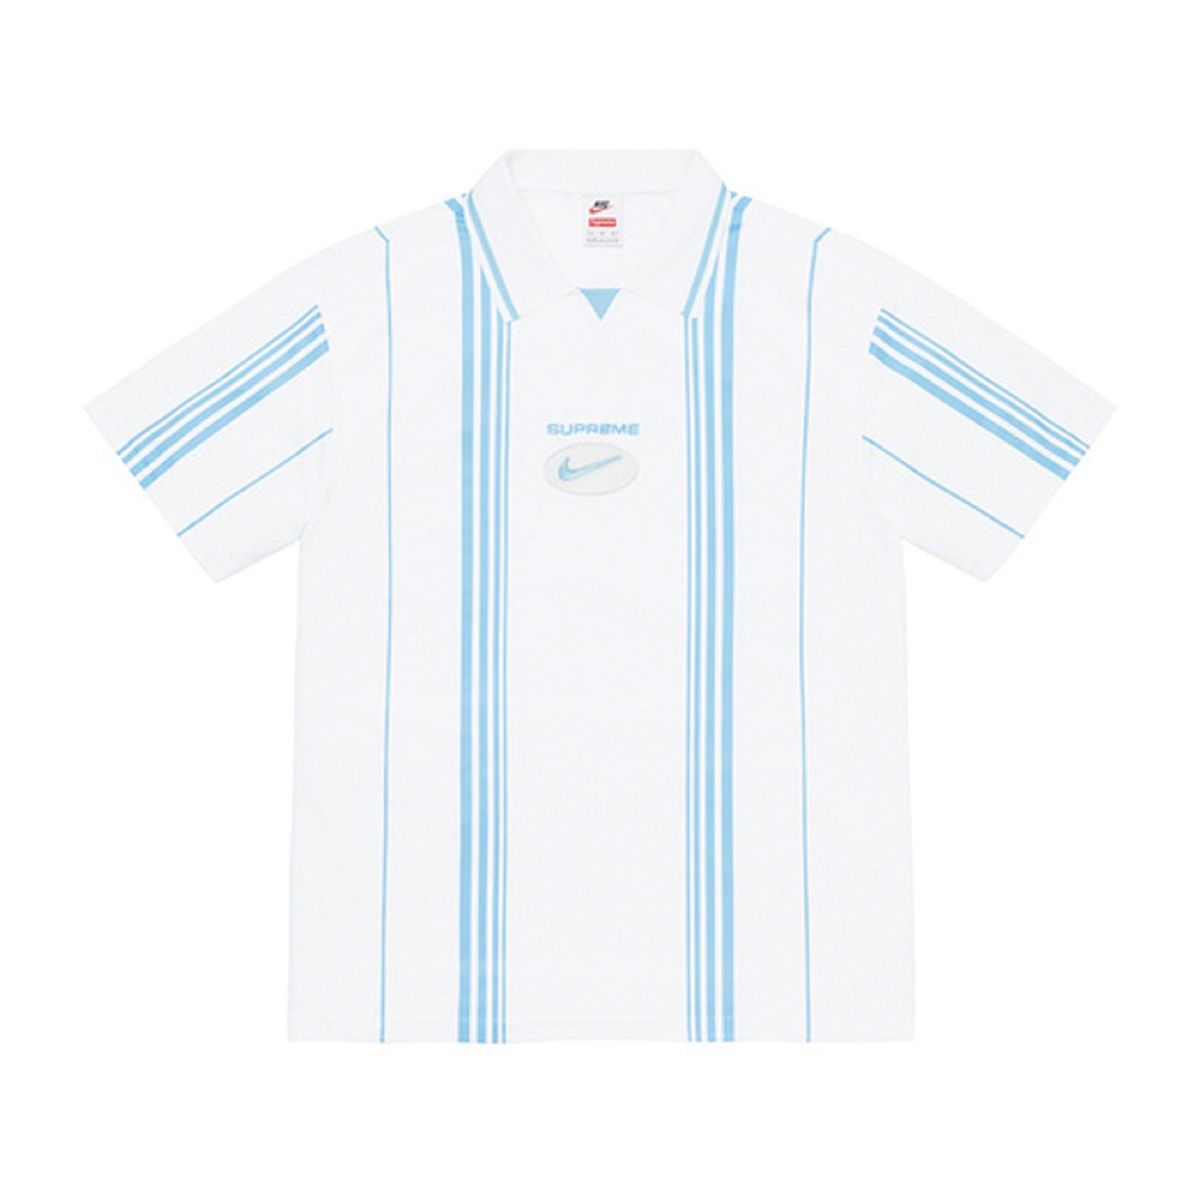 Supreme/Nike Jewel Stripe Soccer Jersey White/Blue